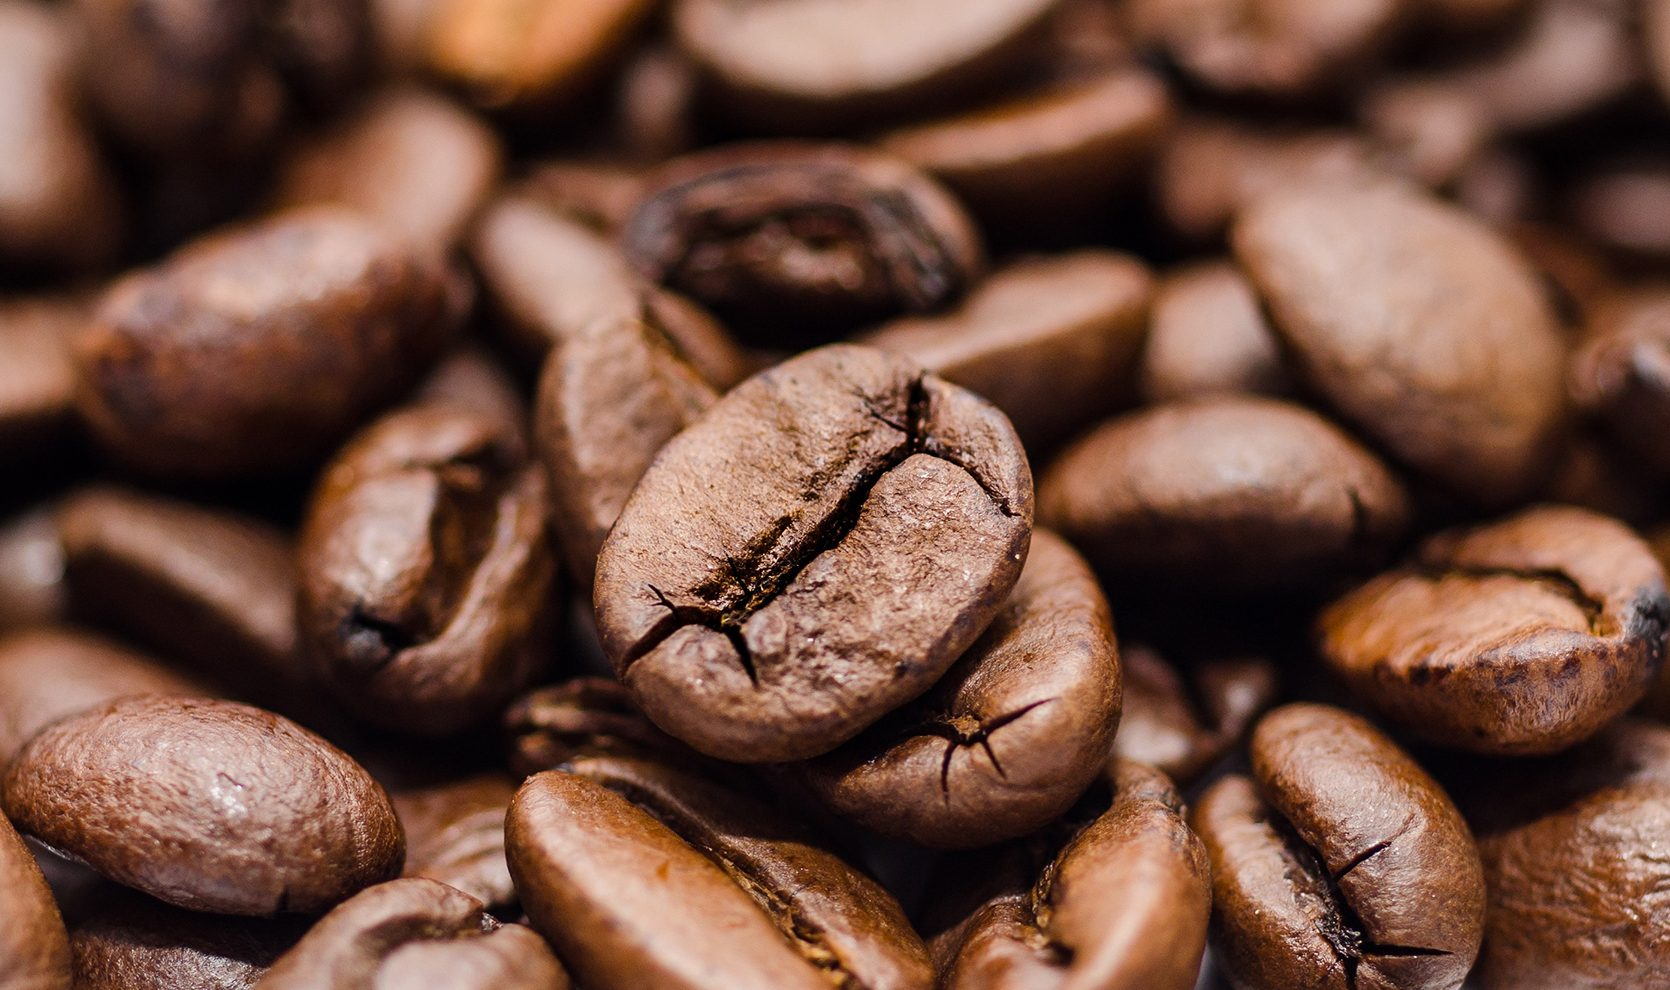 https://redstrandcoffee.com/wp-content/uploads/2019/04/beans-brown-coffee-9186-e1574176203543.jpg